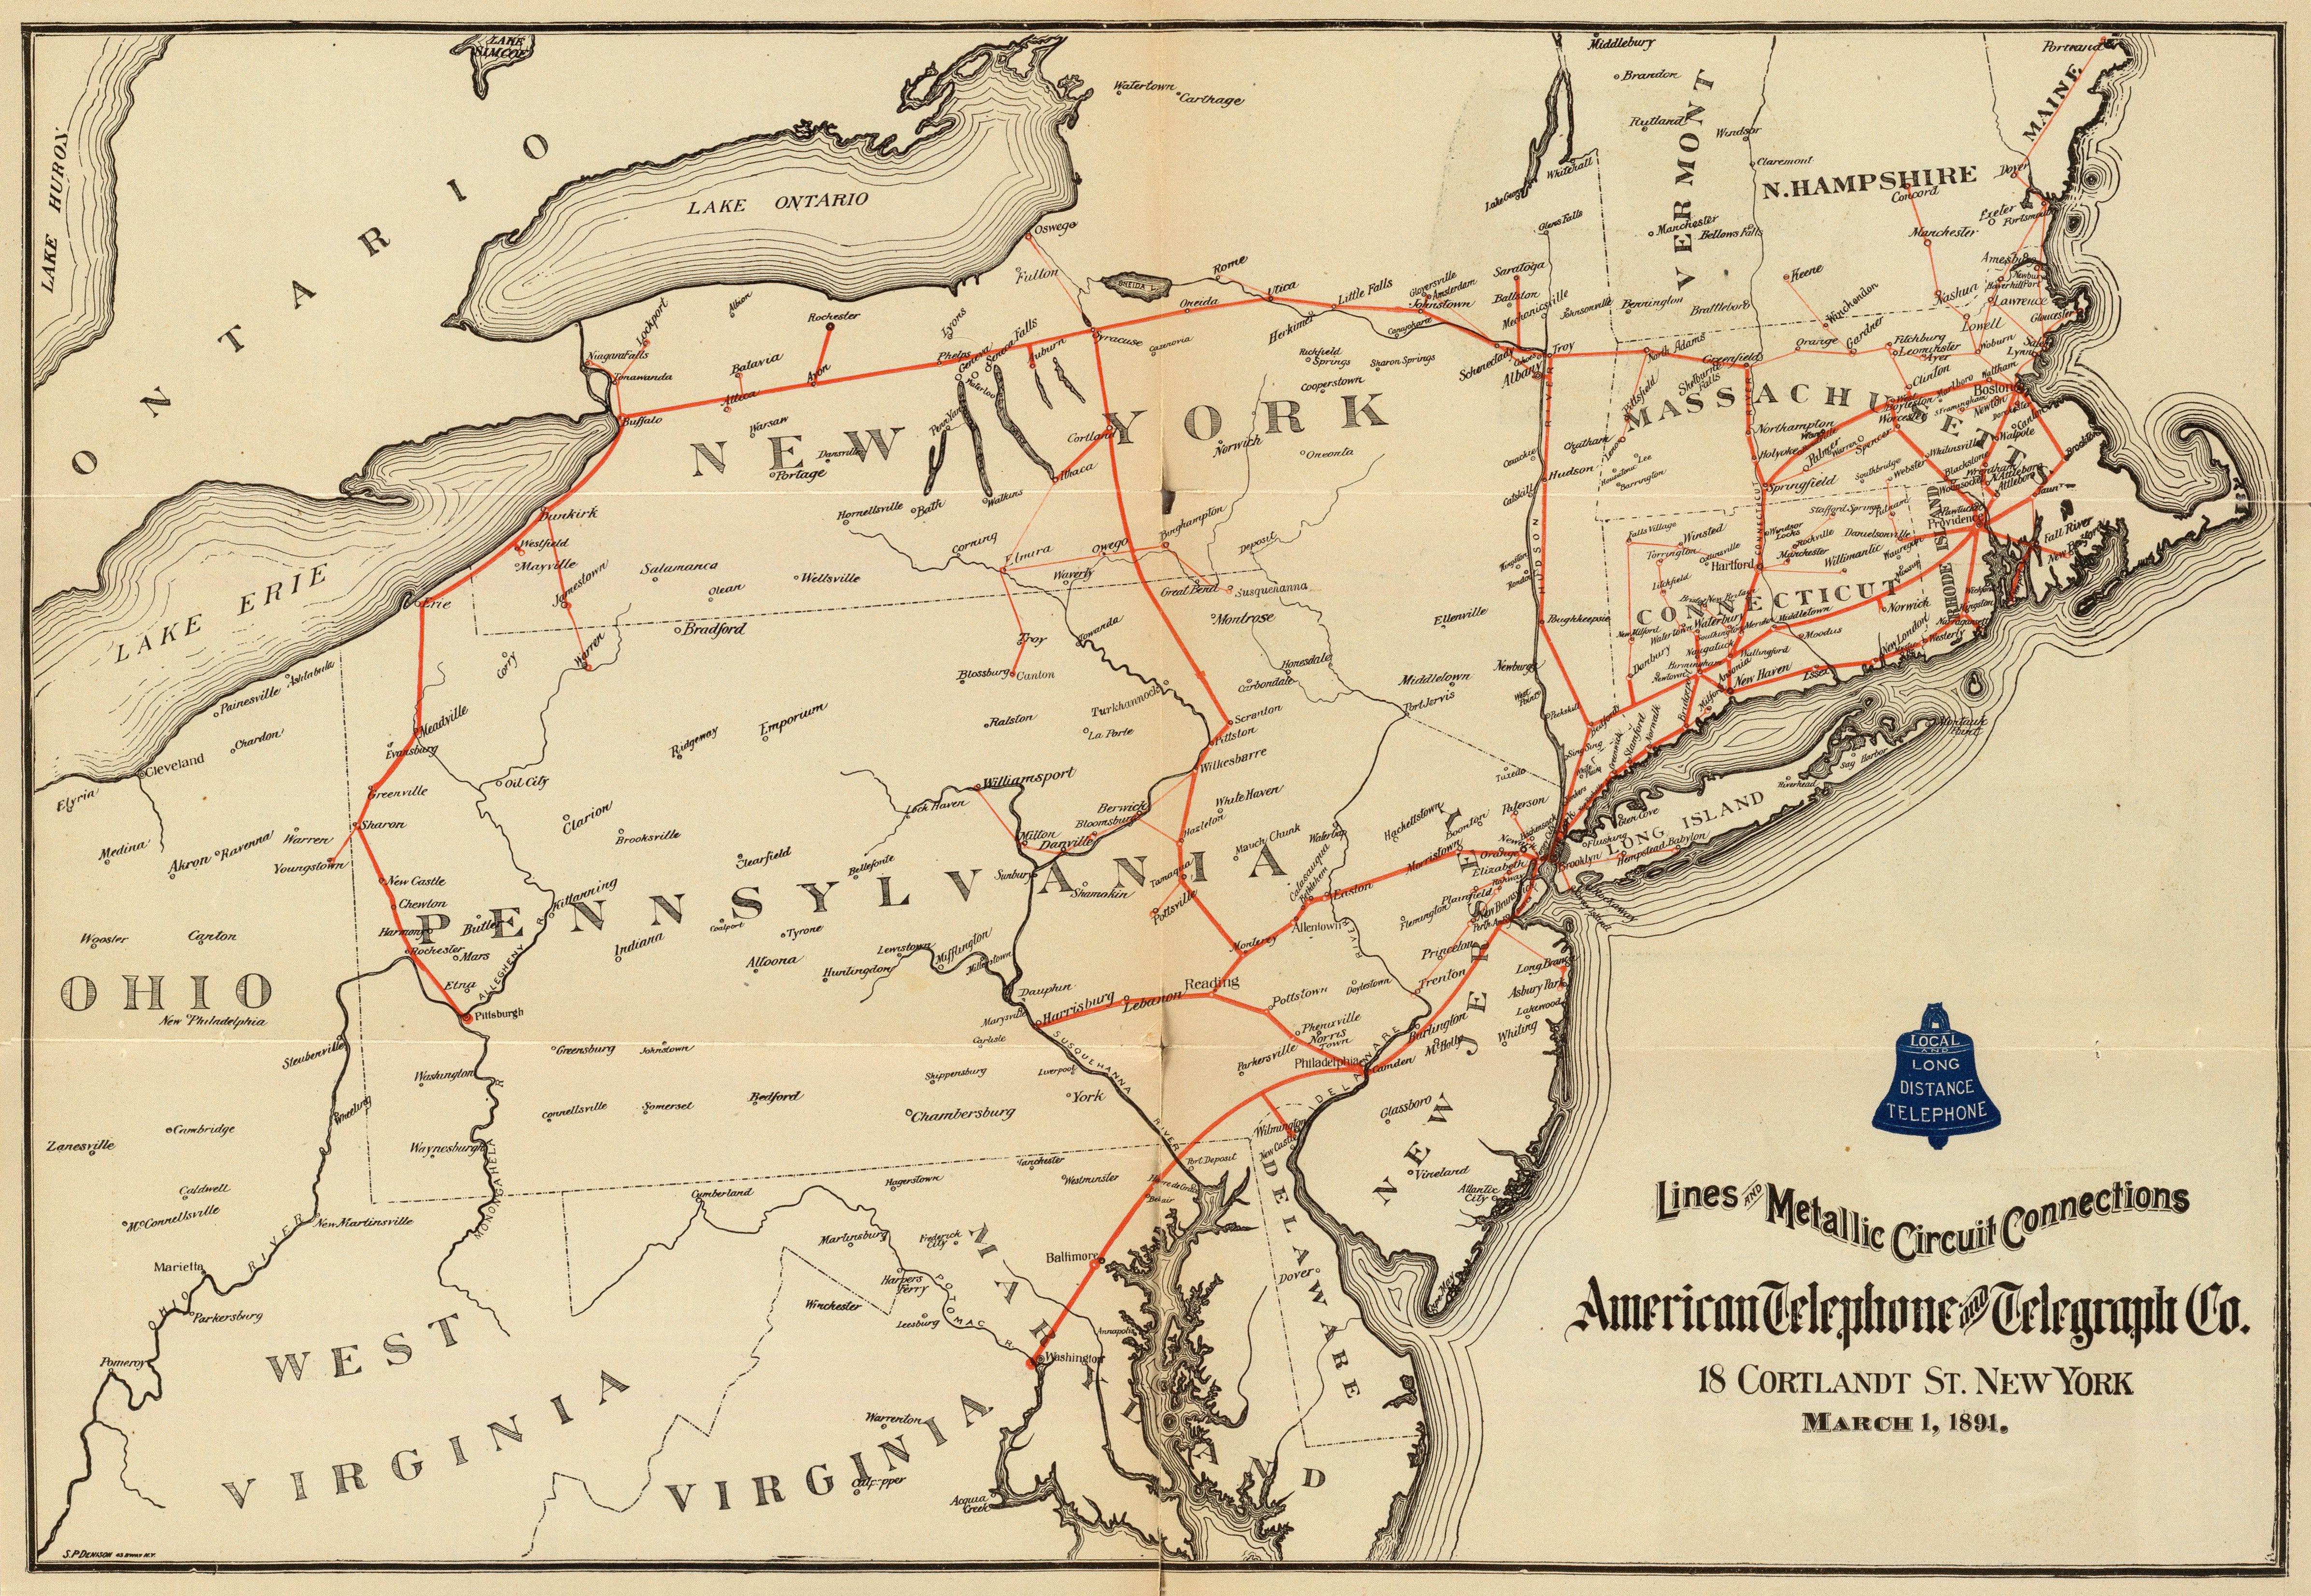 A Stunning Map of AT&T's Phone Network from 1891